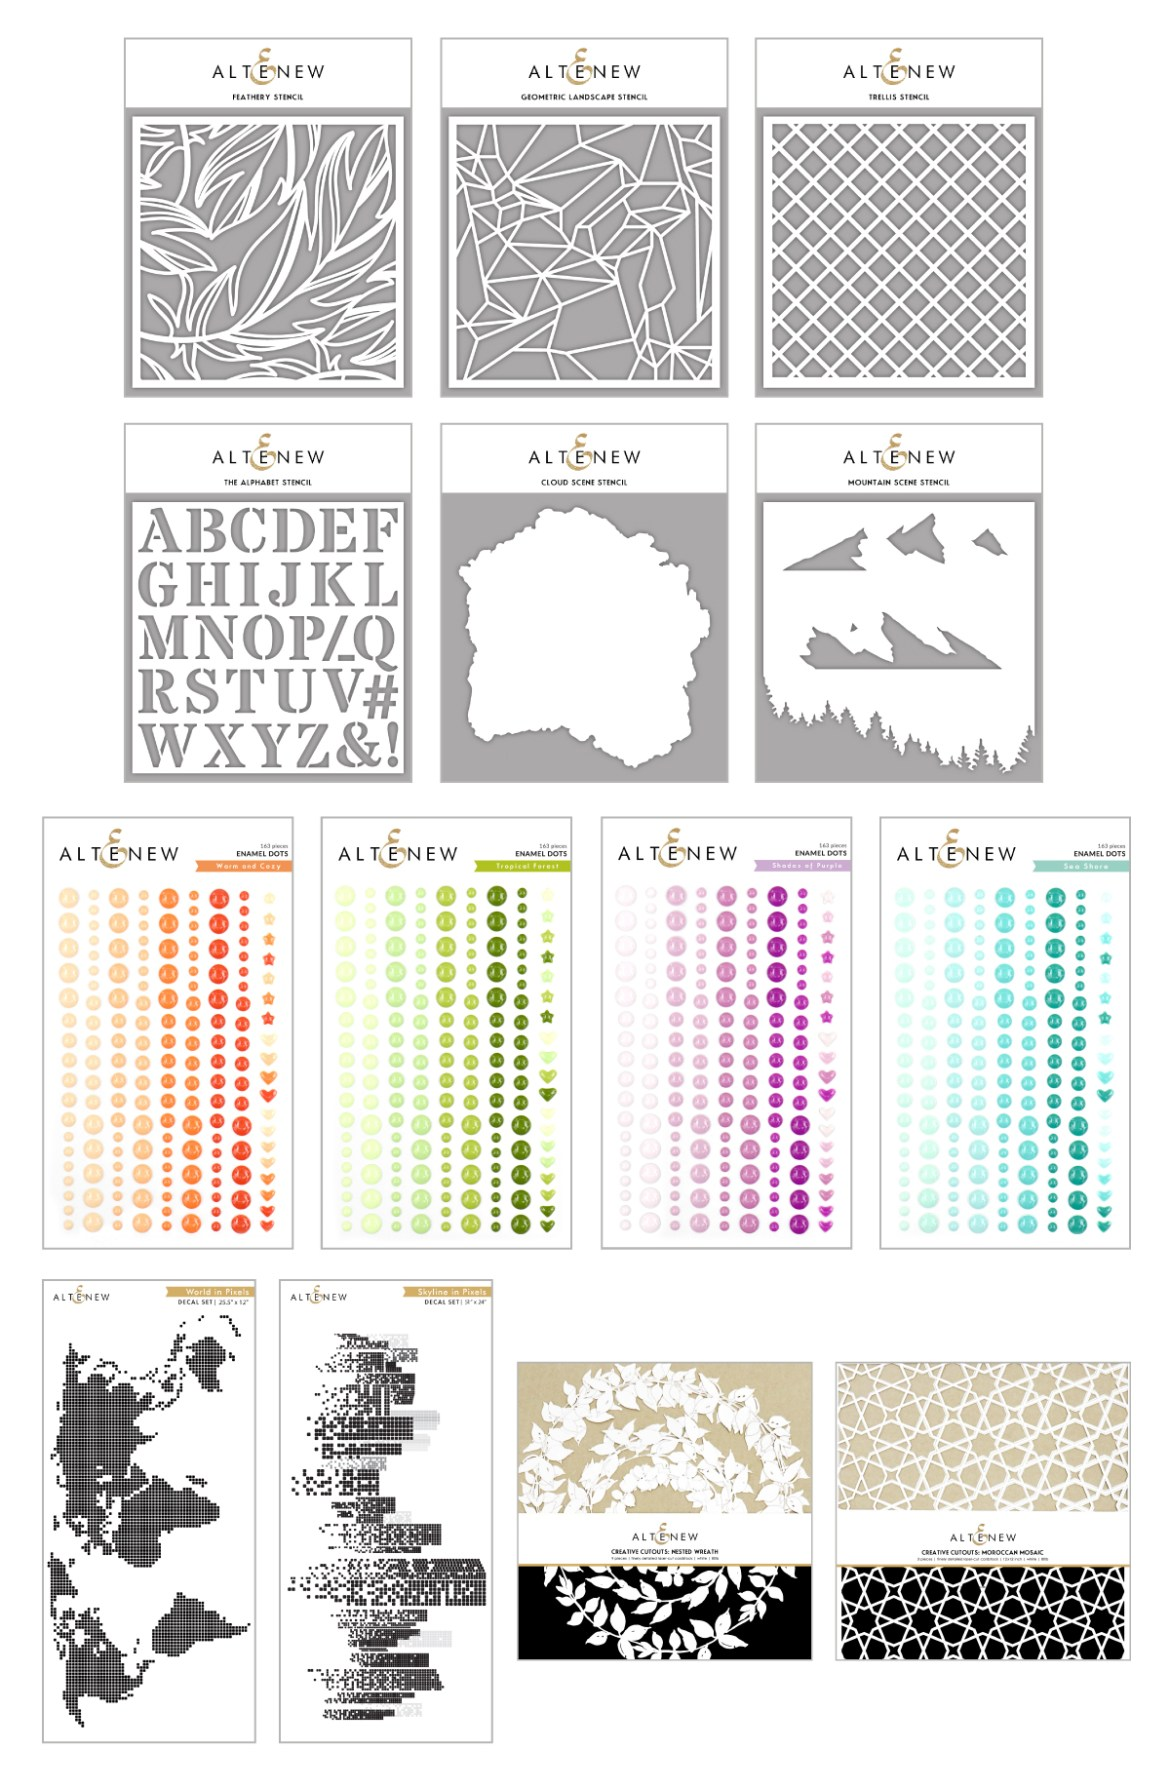 New Altenew Release: Stencils, Enamel Dots, Decals, Cut-outs